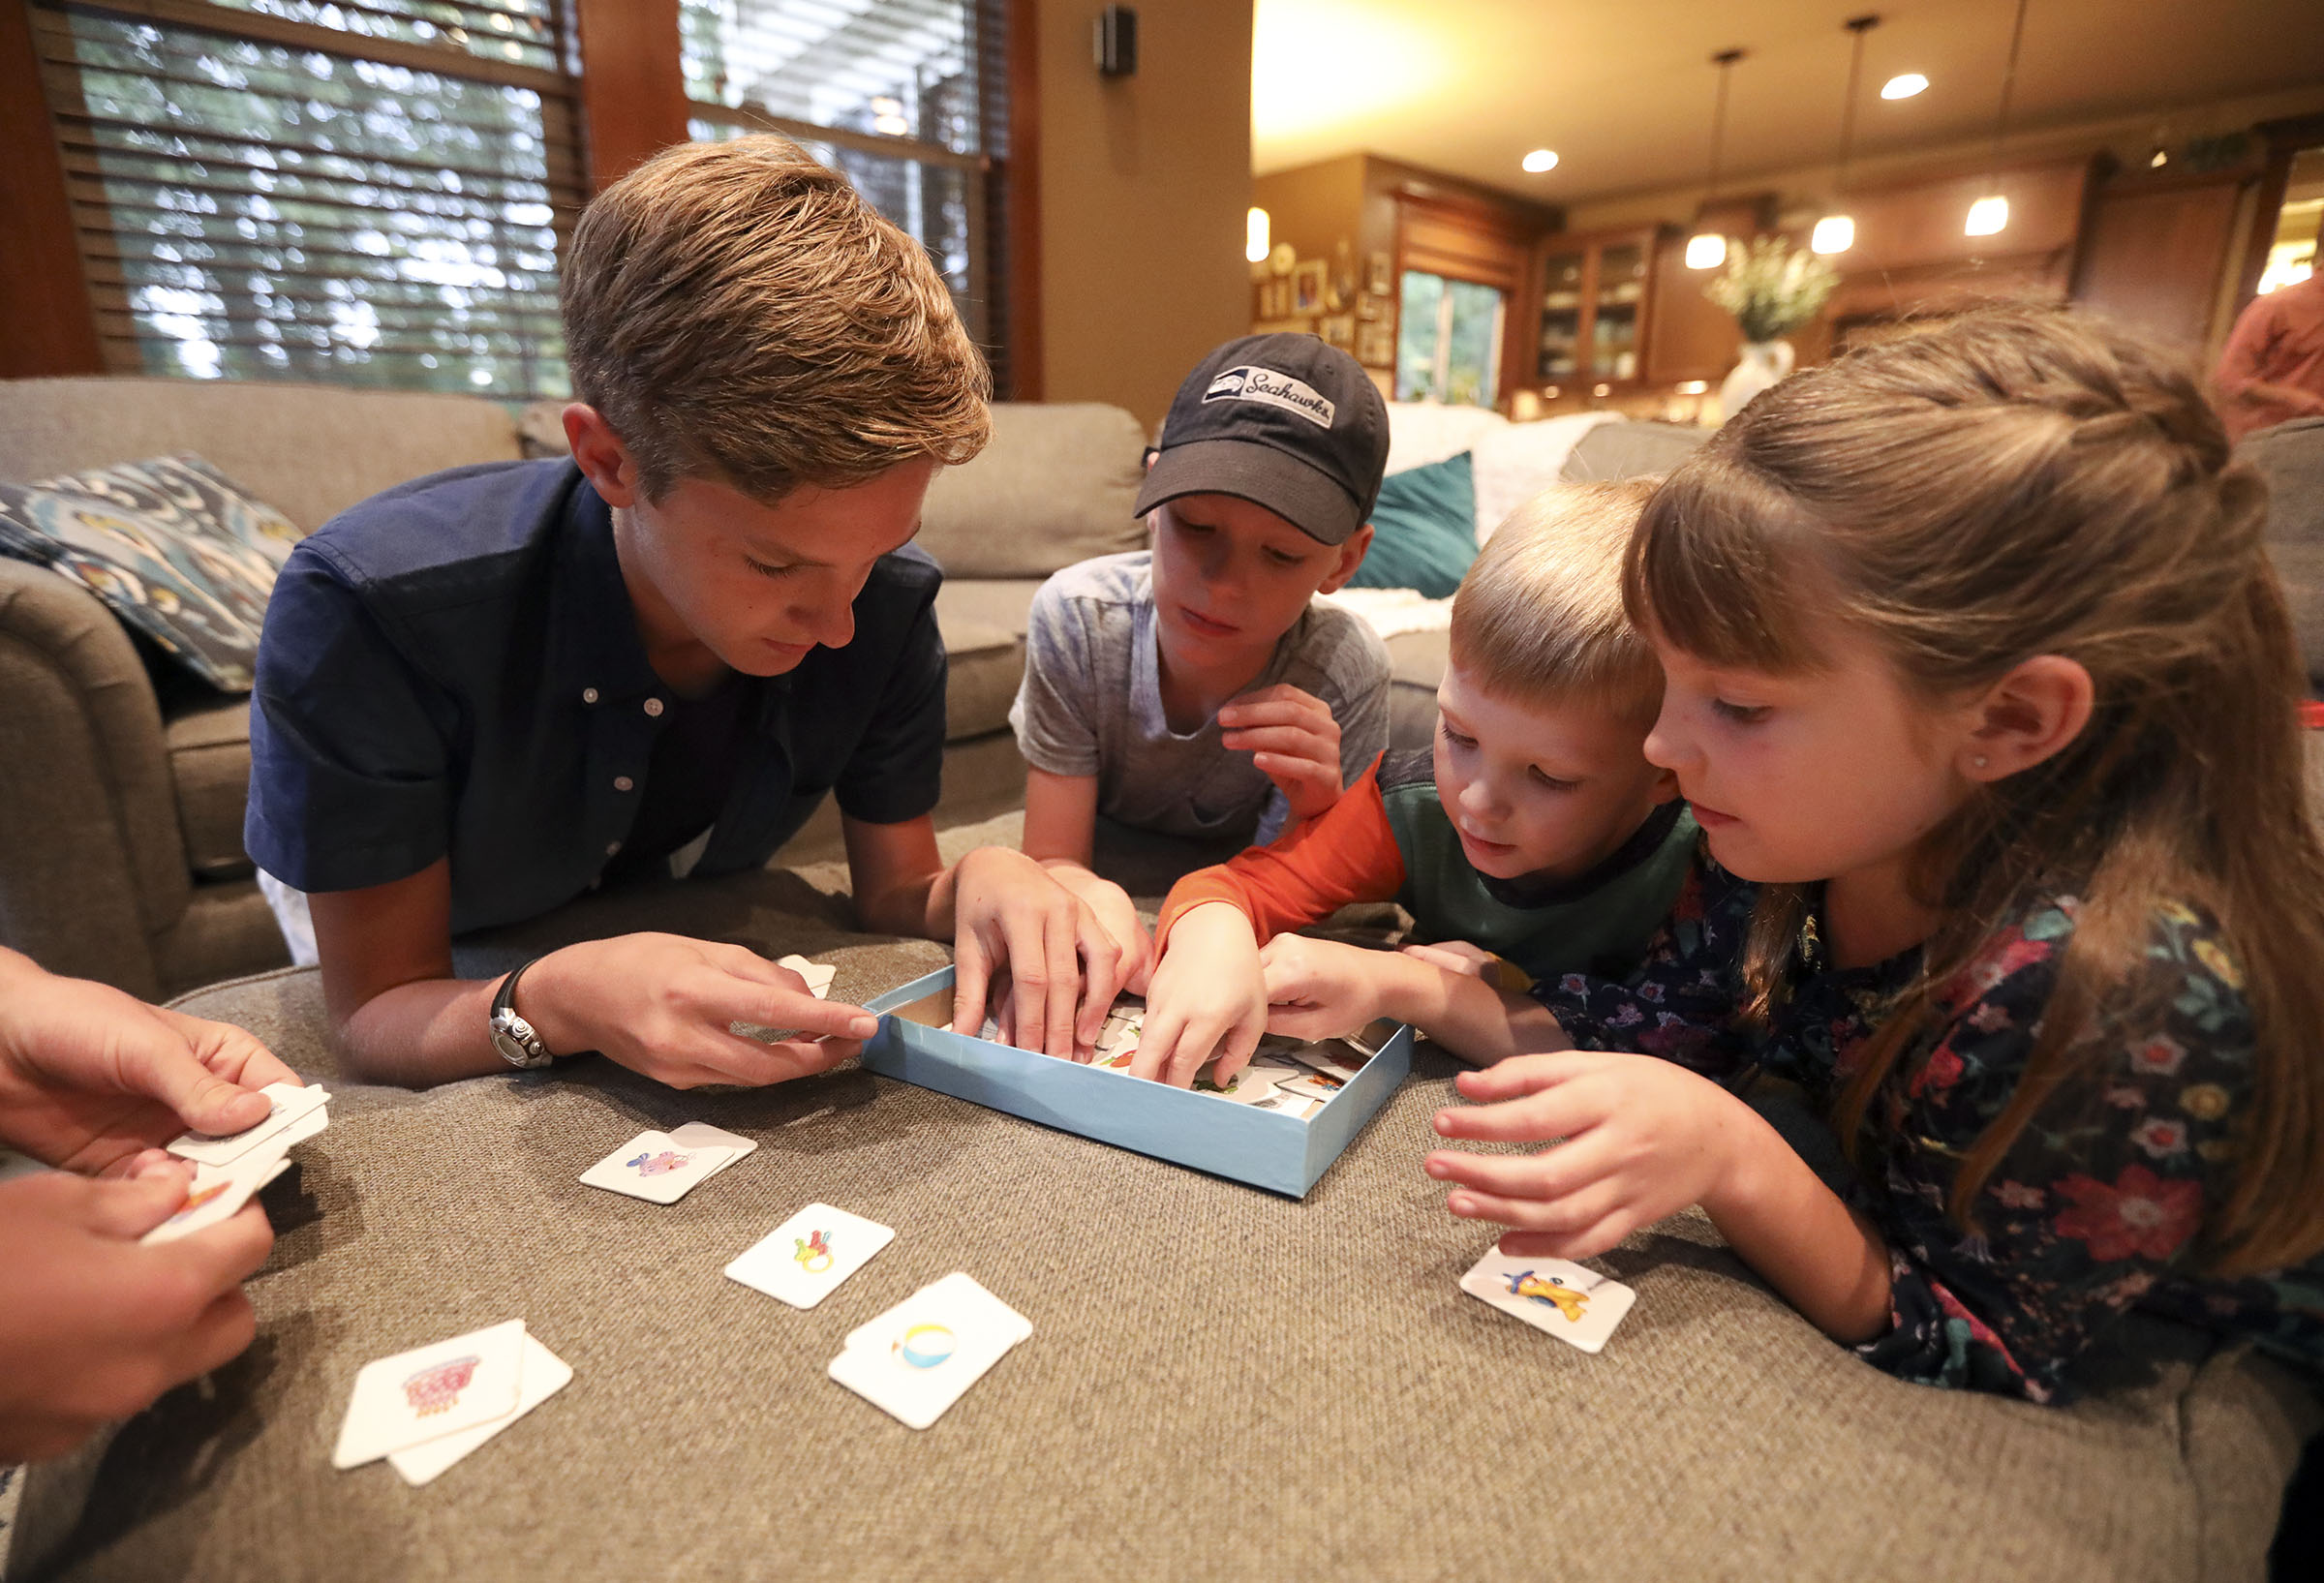 Ben, Tom, Daniel and Emilia Allen play Memory at home in Renton, Wash., on Friday, Sept. 14, 2018.